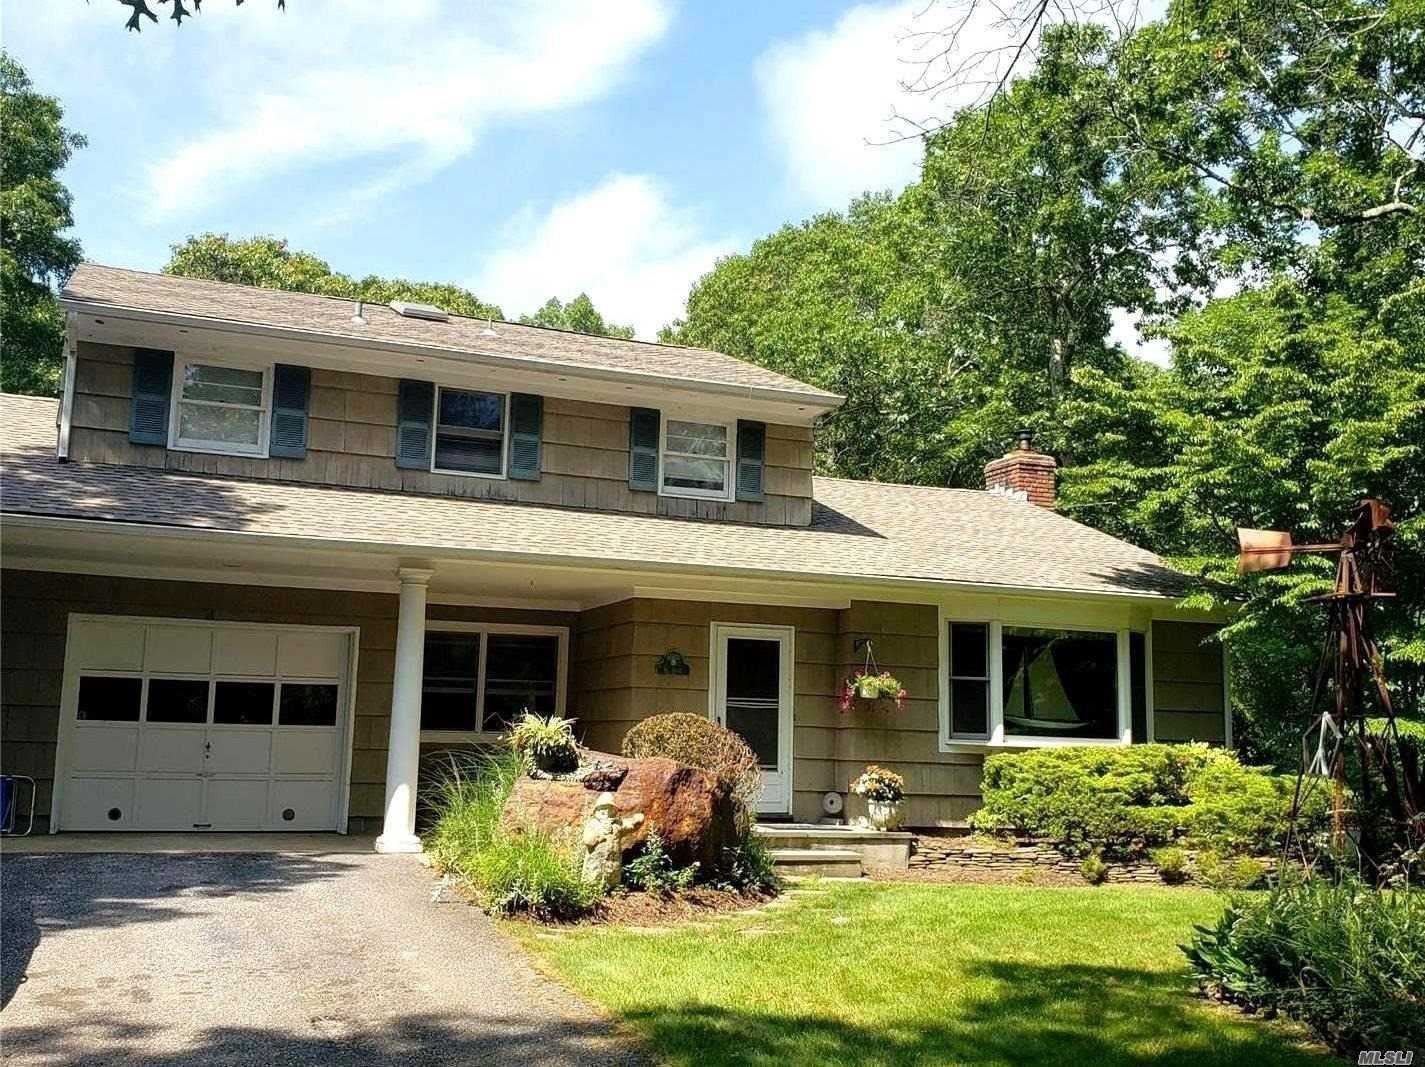 74 Eisenhower Dr, East Quogue, NY 11942 - MLS#: 3236725